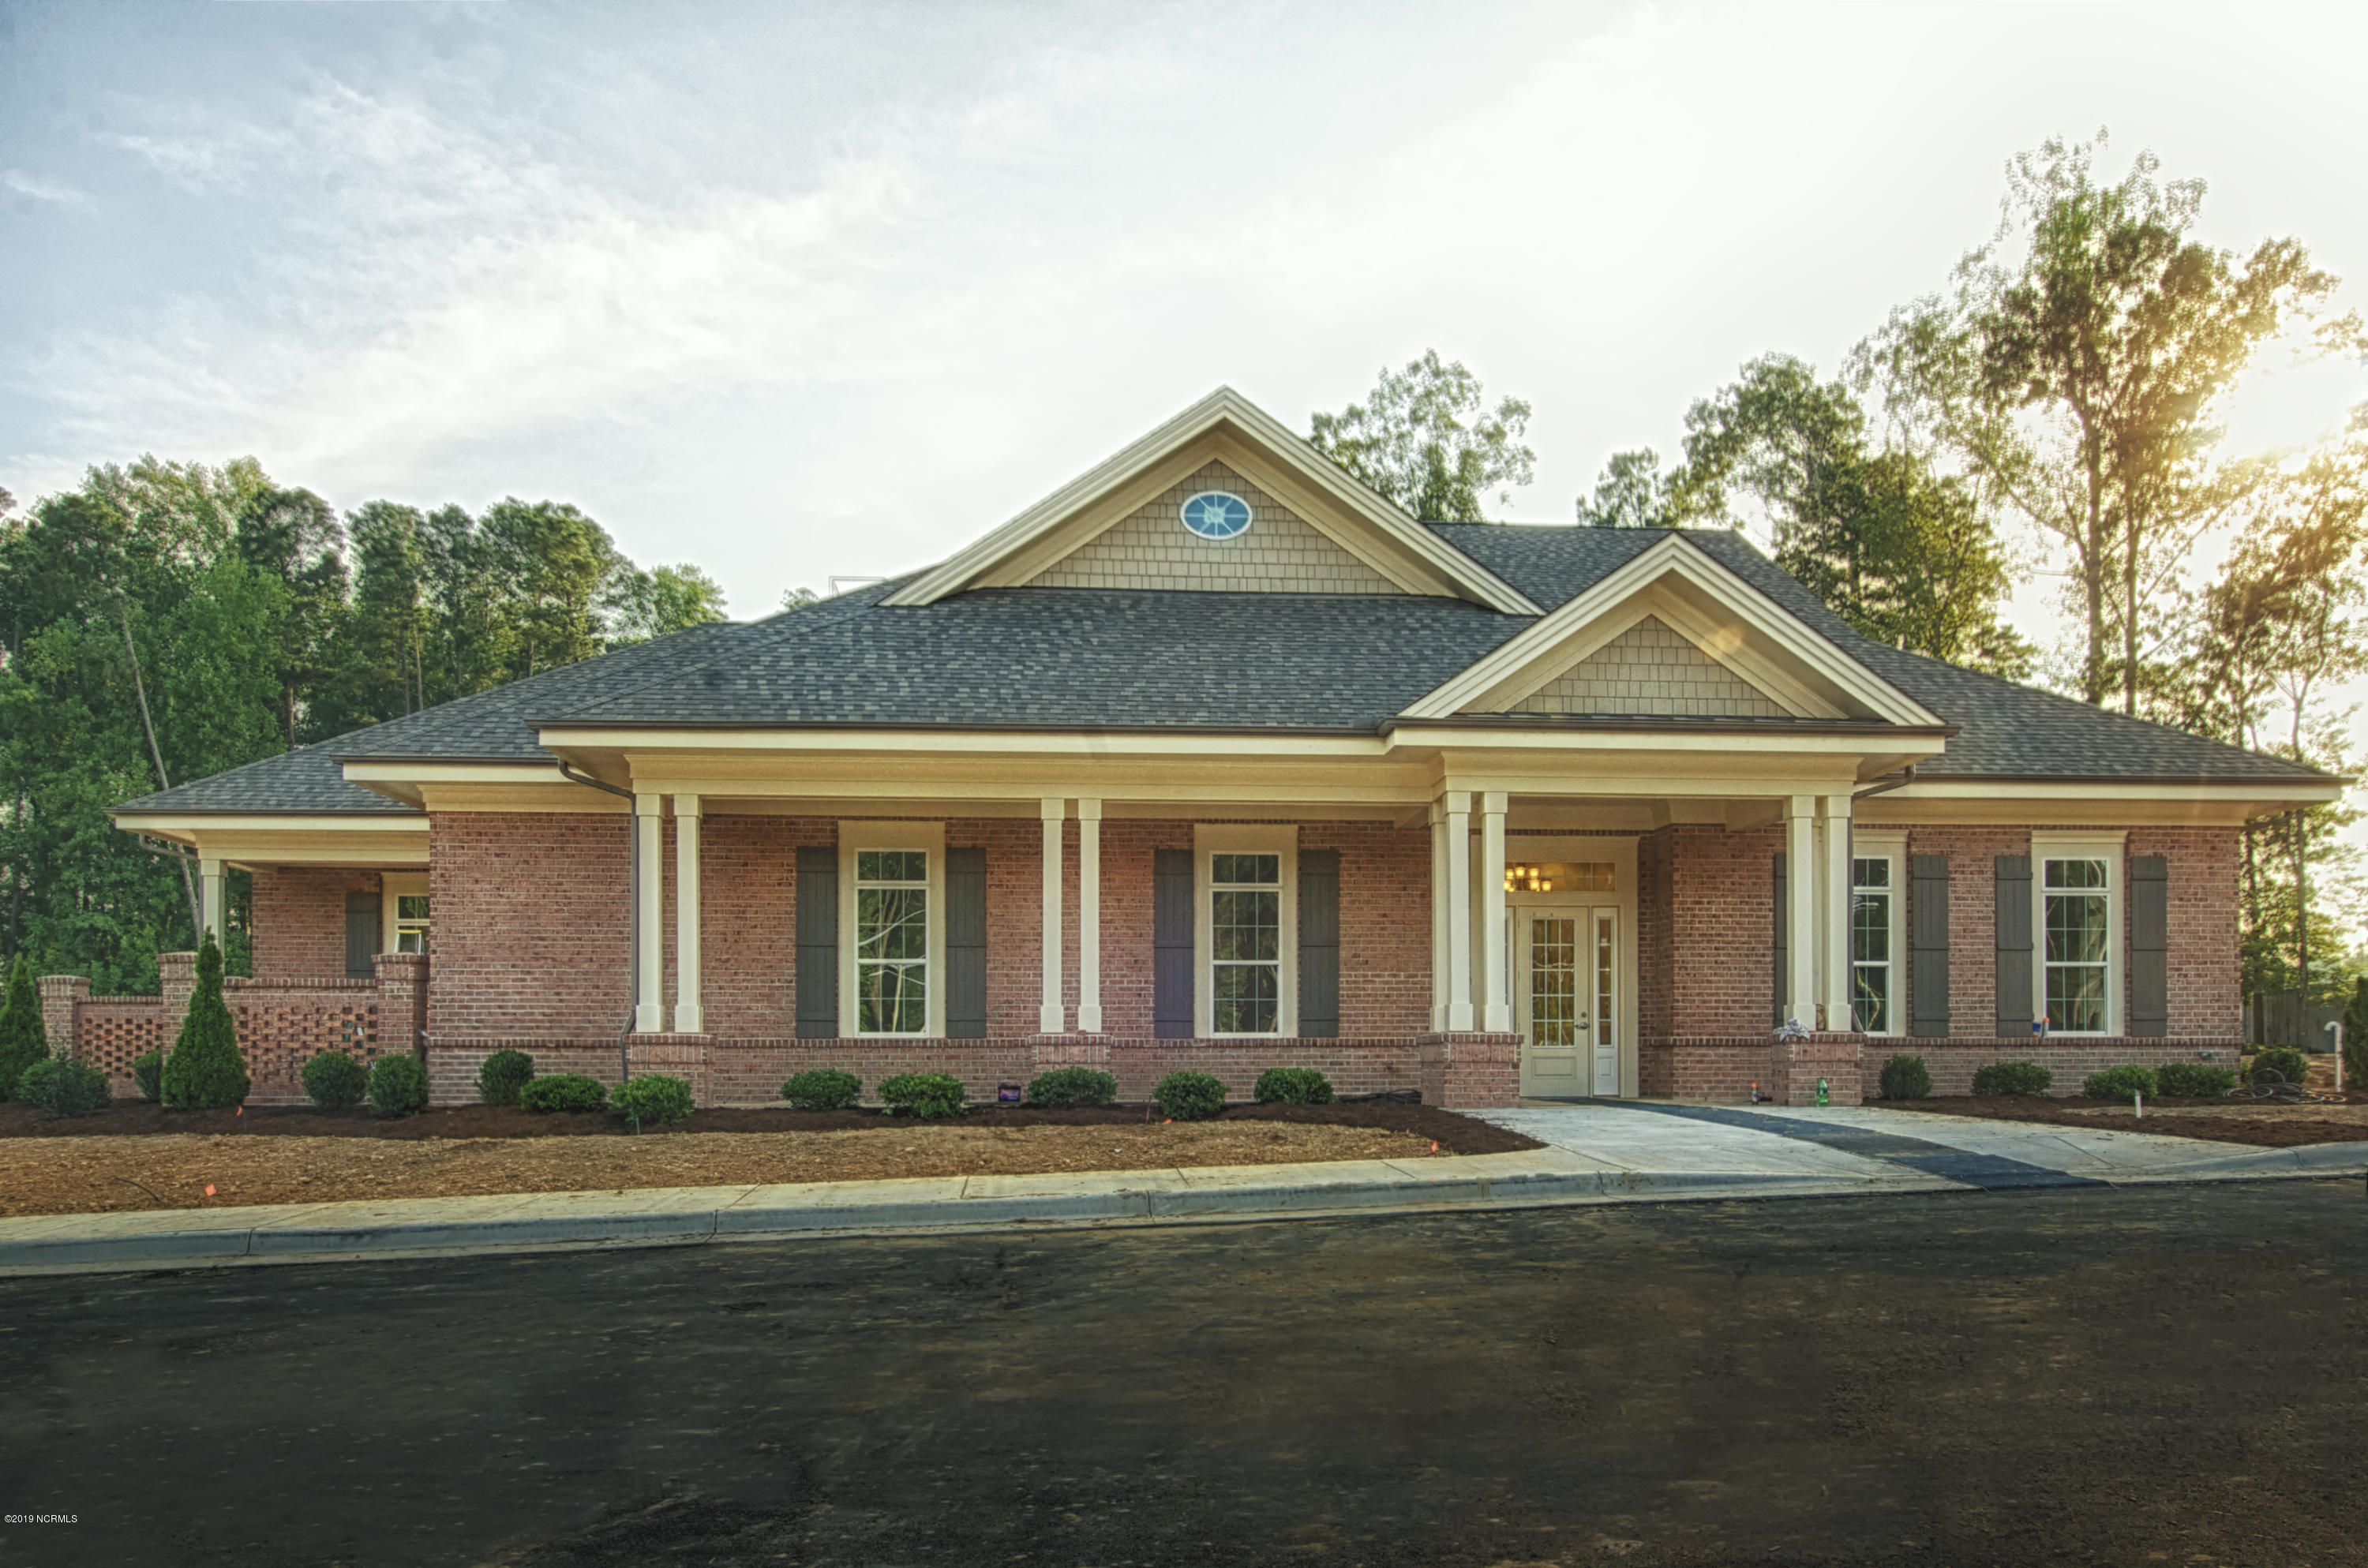 696 Chimney Hill Way, Rocky Mount, North Carolina 27804, ,Residential land,For sale,Chimney Hill,100193303